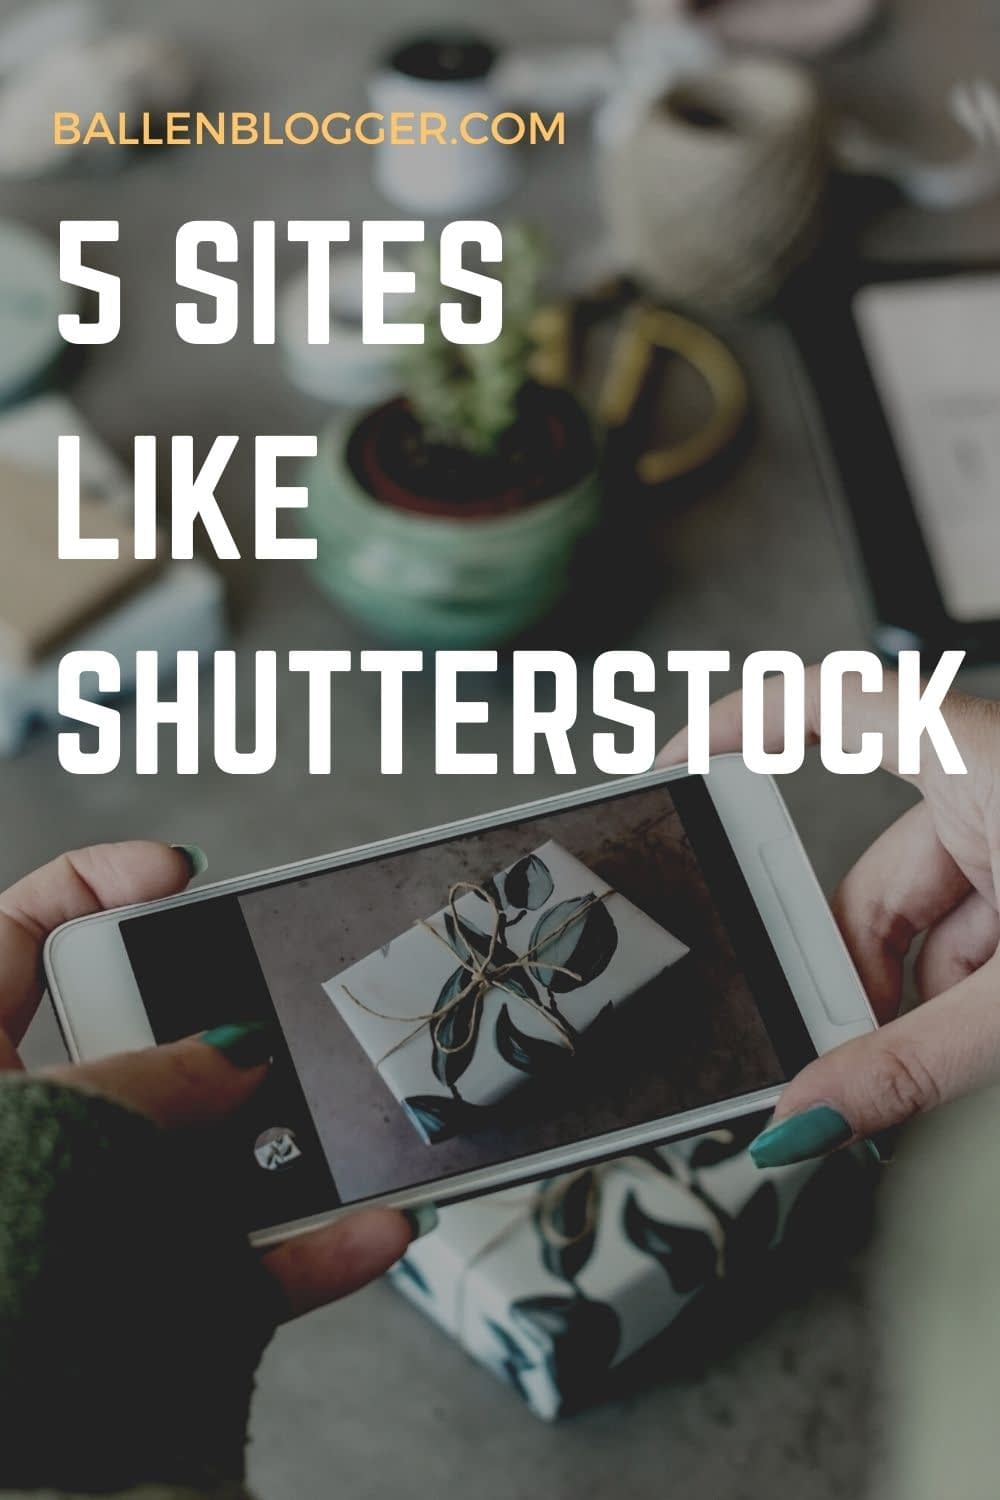 Great images can either make or break your project. So, it makes sense to look for sites like Shutterstock because Shutterstock is considered the best.